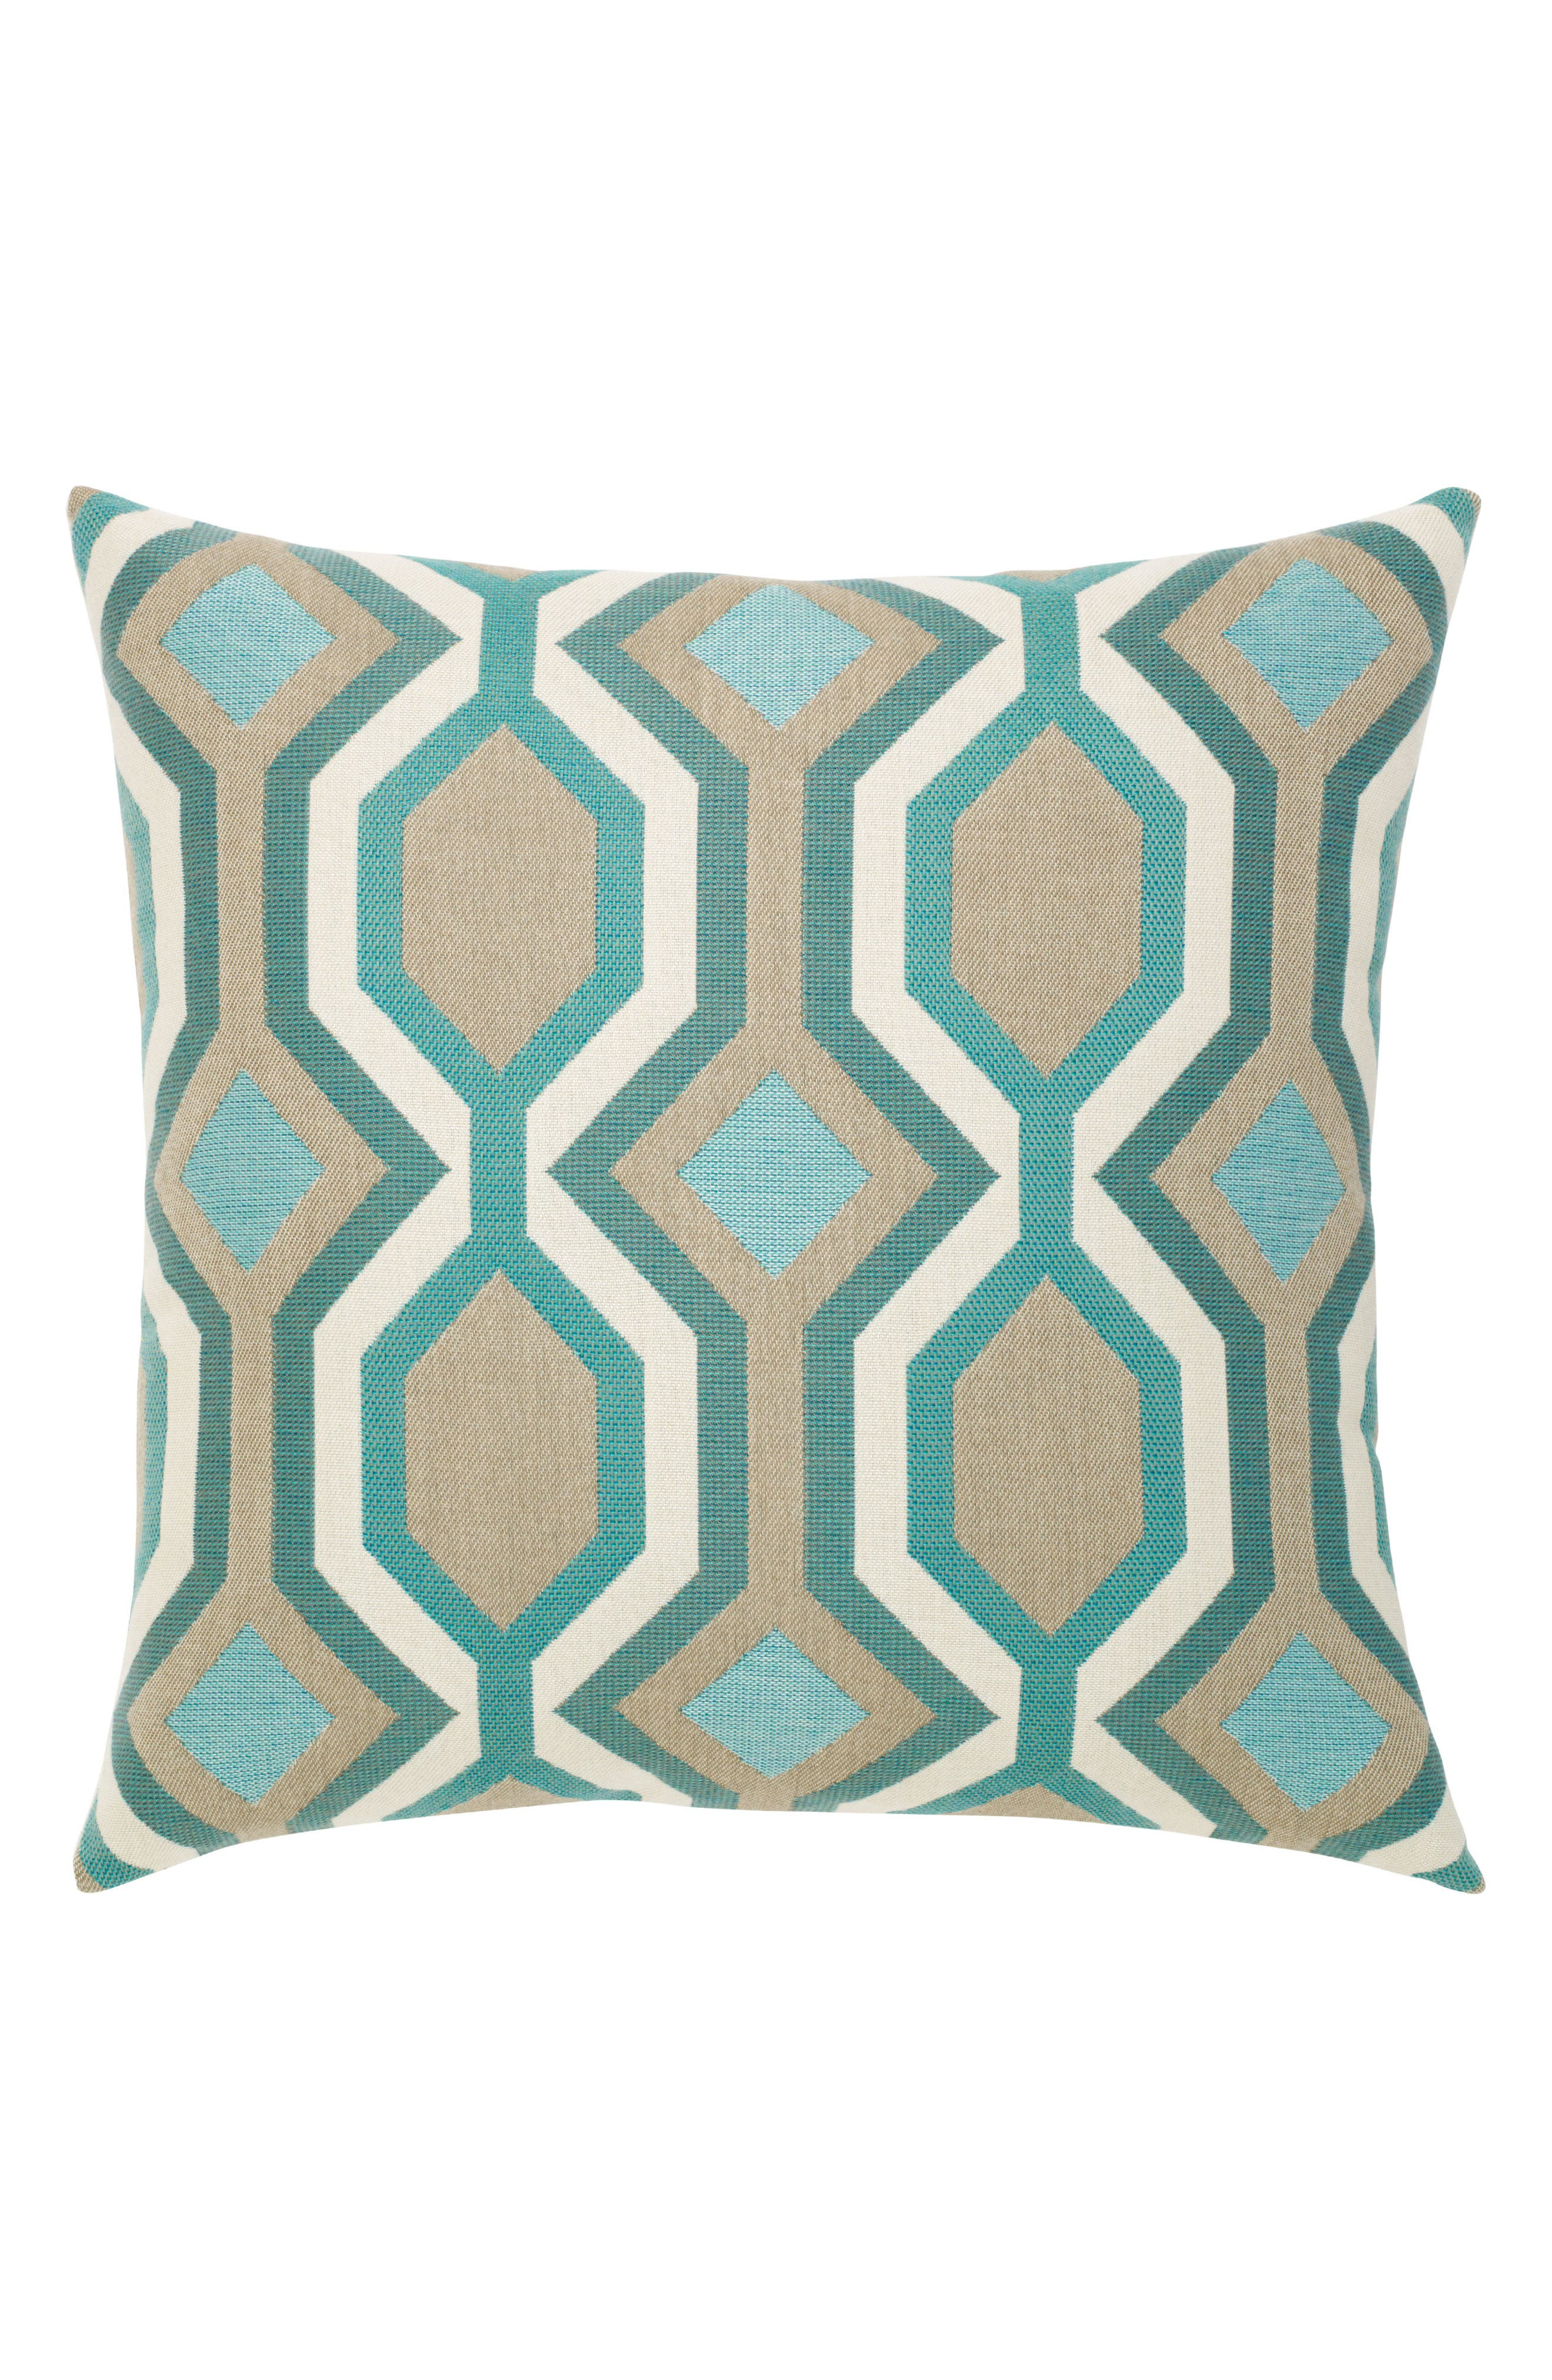 Turquoise Geo Indoor/Outdoor Accent Pillow,                         Main,                         color, 400